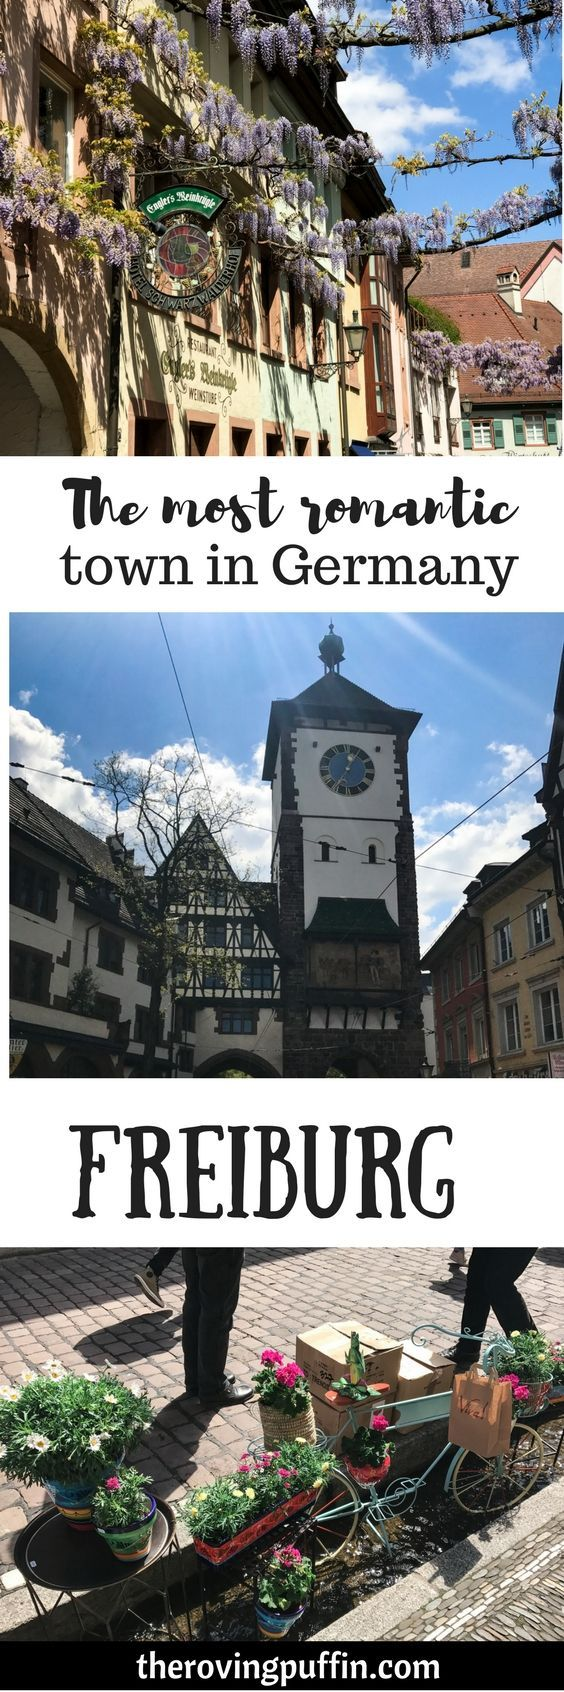 Our guide to visit the beautiful town of Freiburg in Germany.